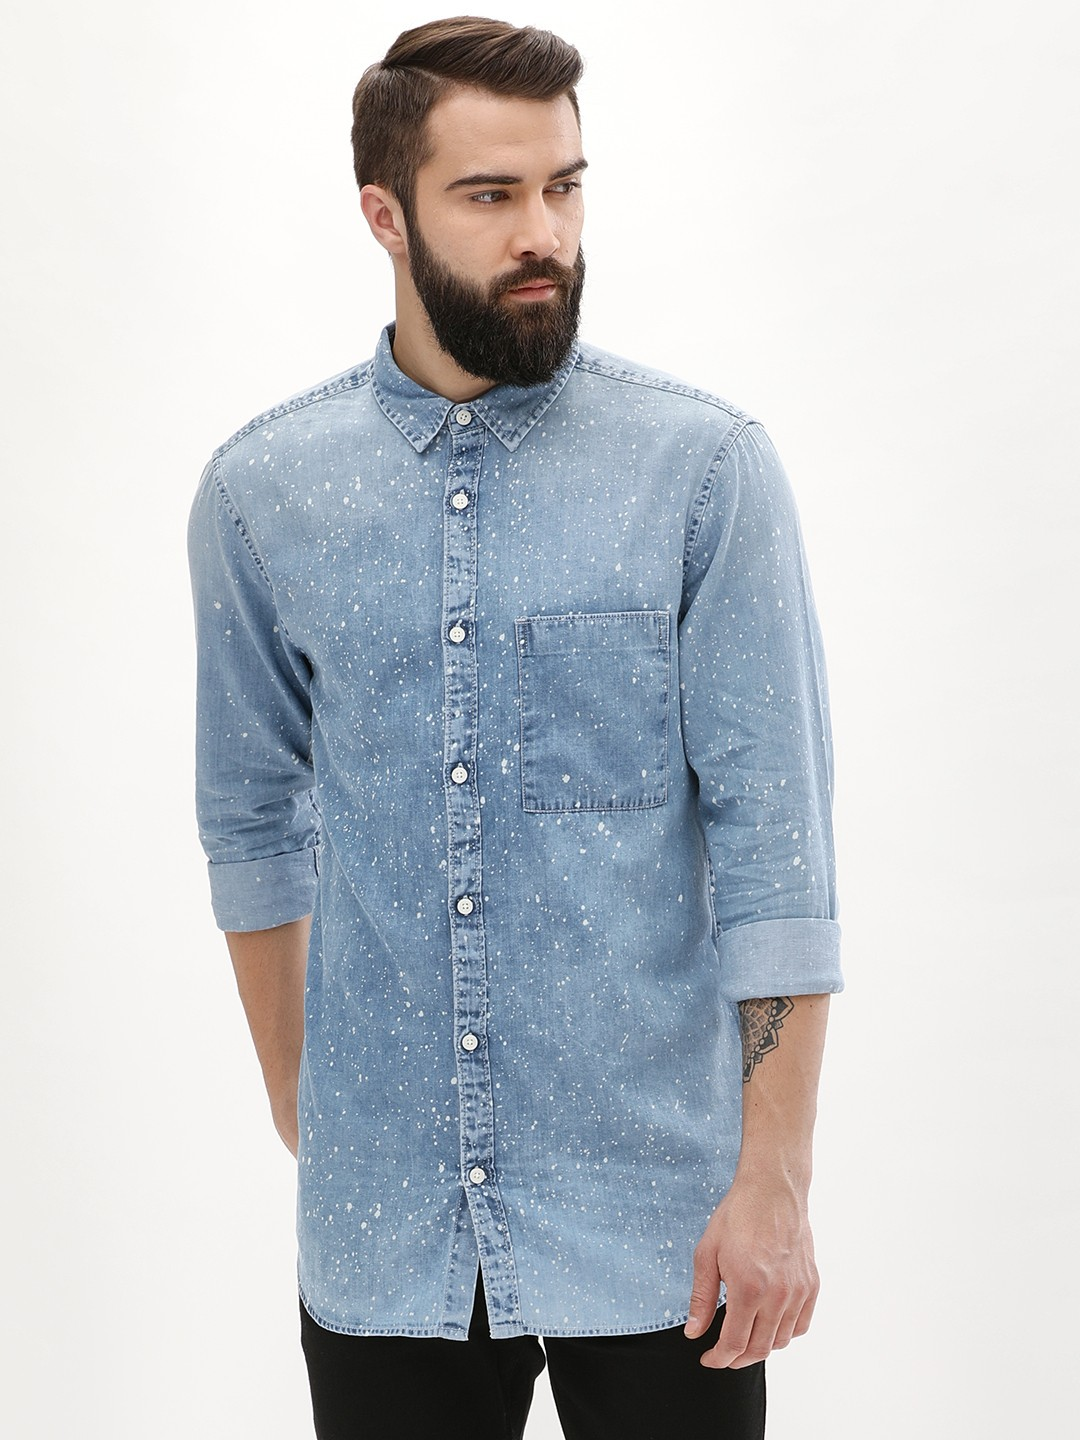 New Look PALE BLUE Paint Splatter Denim Shirt 1